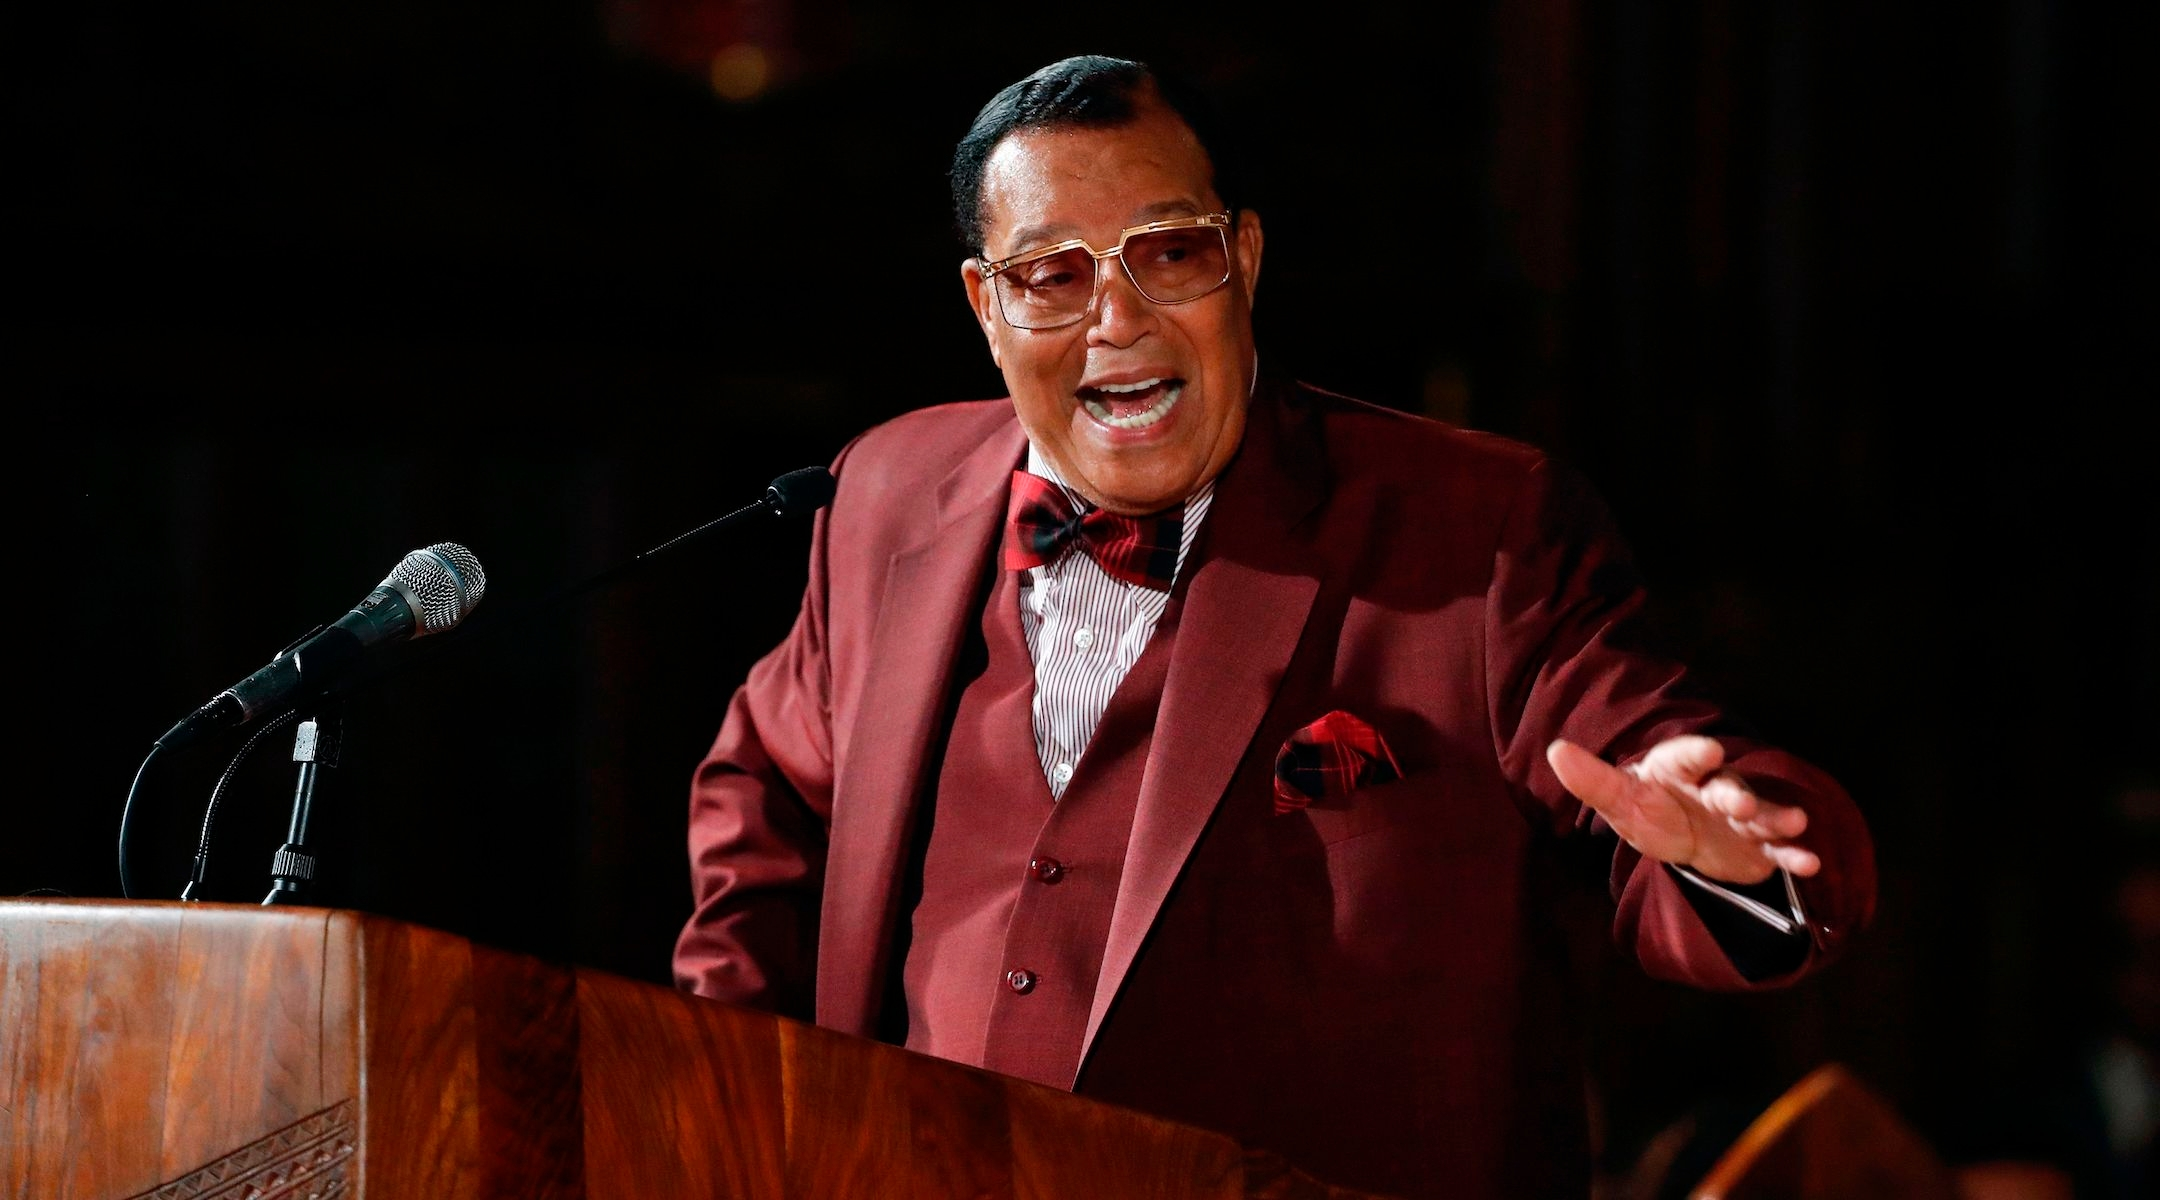 In 3-hour Fourth of July speech, Nation of Islam leader Louis Farrakhan rebuts charges of...